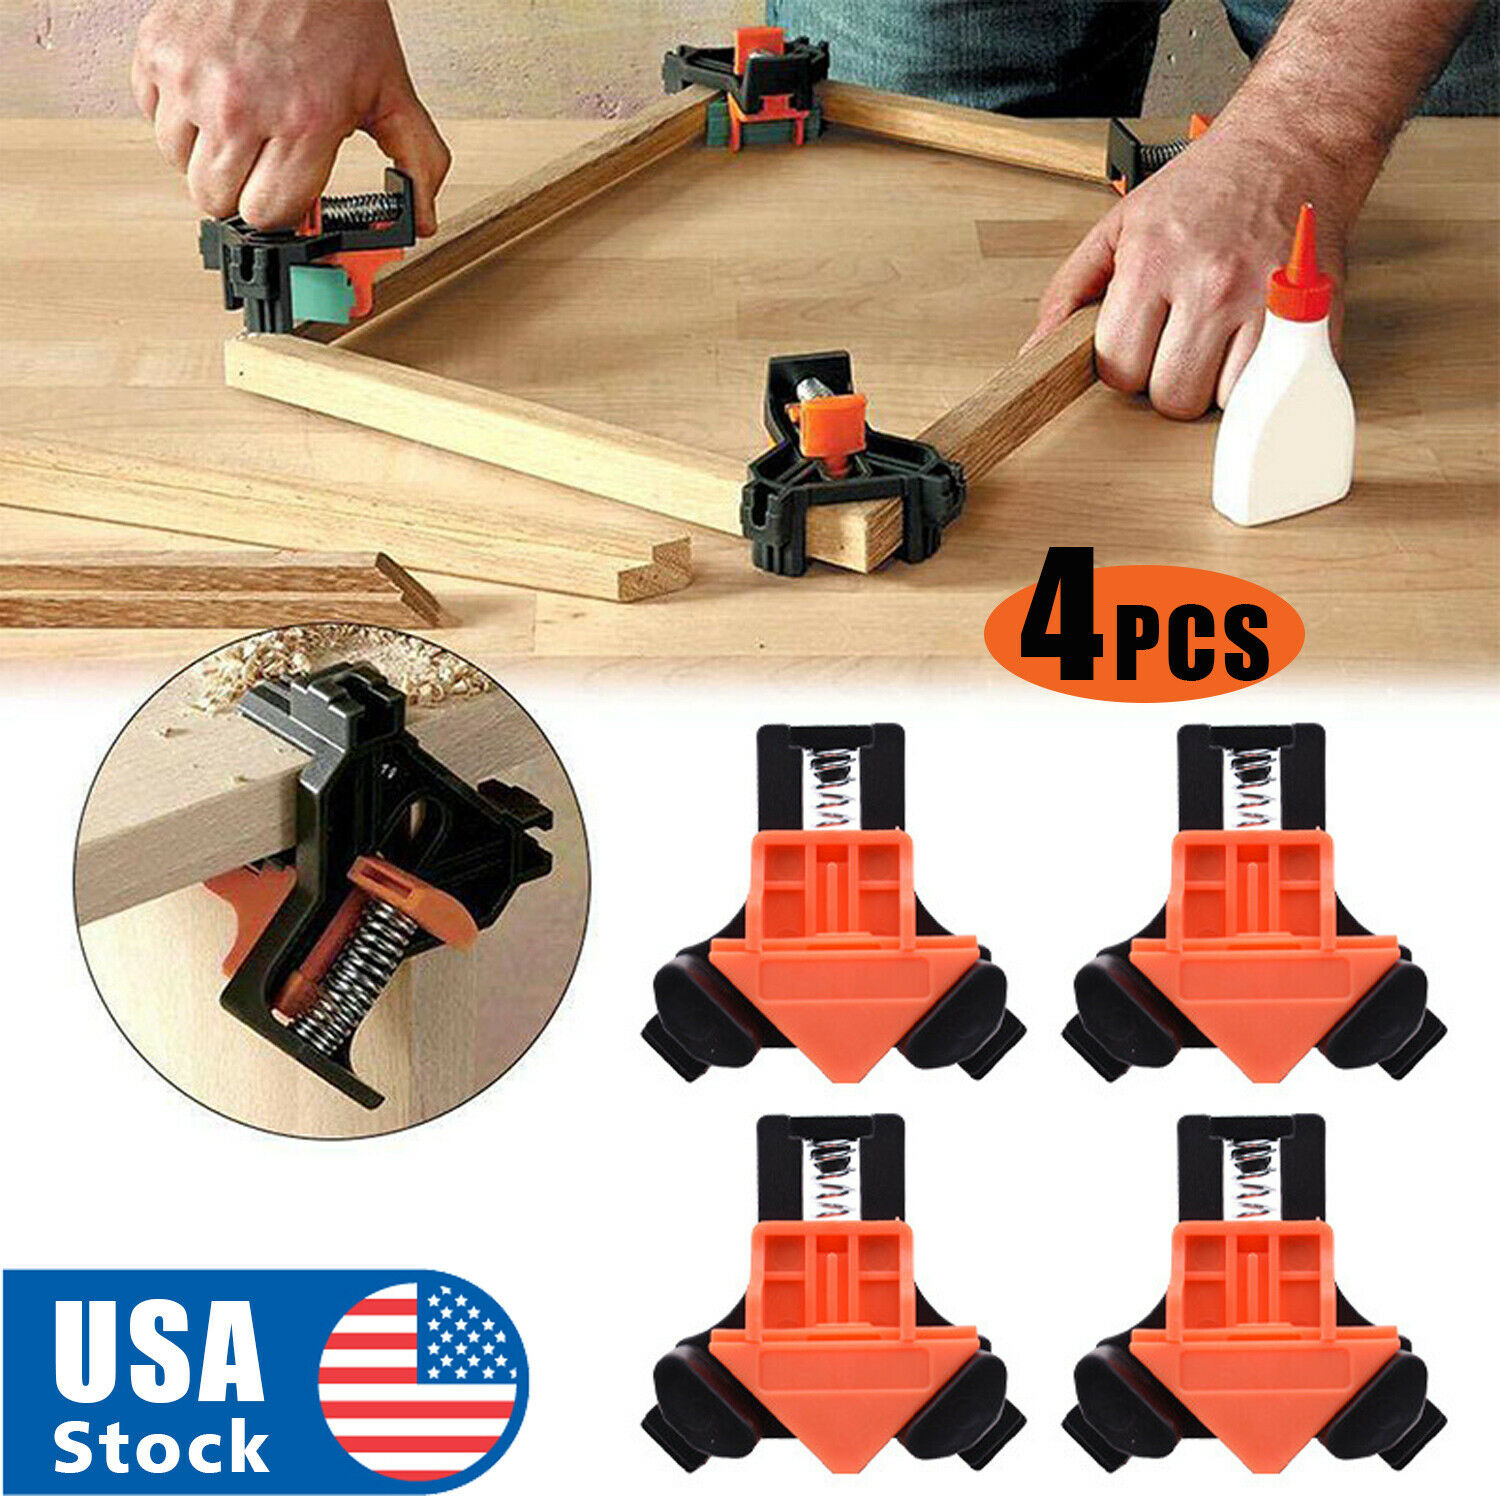 4Pcs/Set 90 Degree Right Angle Clip Clamps Corner Holders Woodworking Hand Tools Clamps & Vises